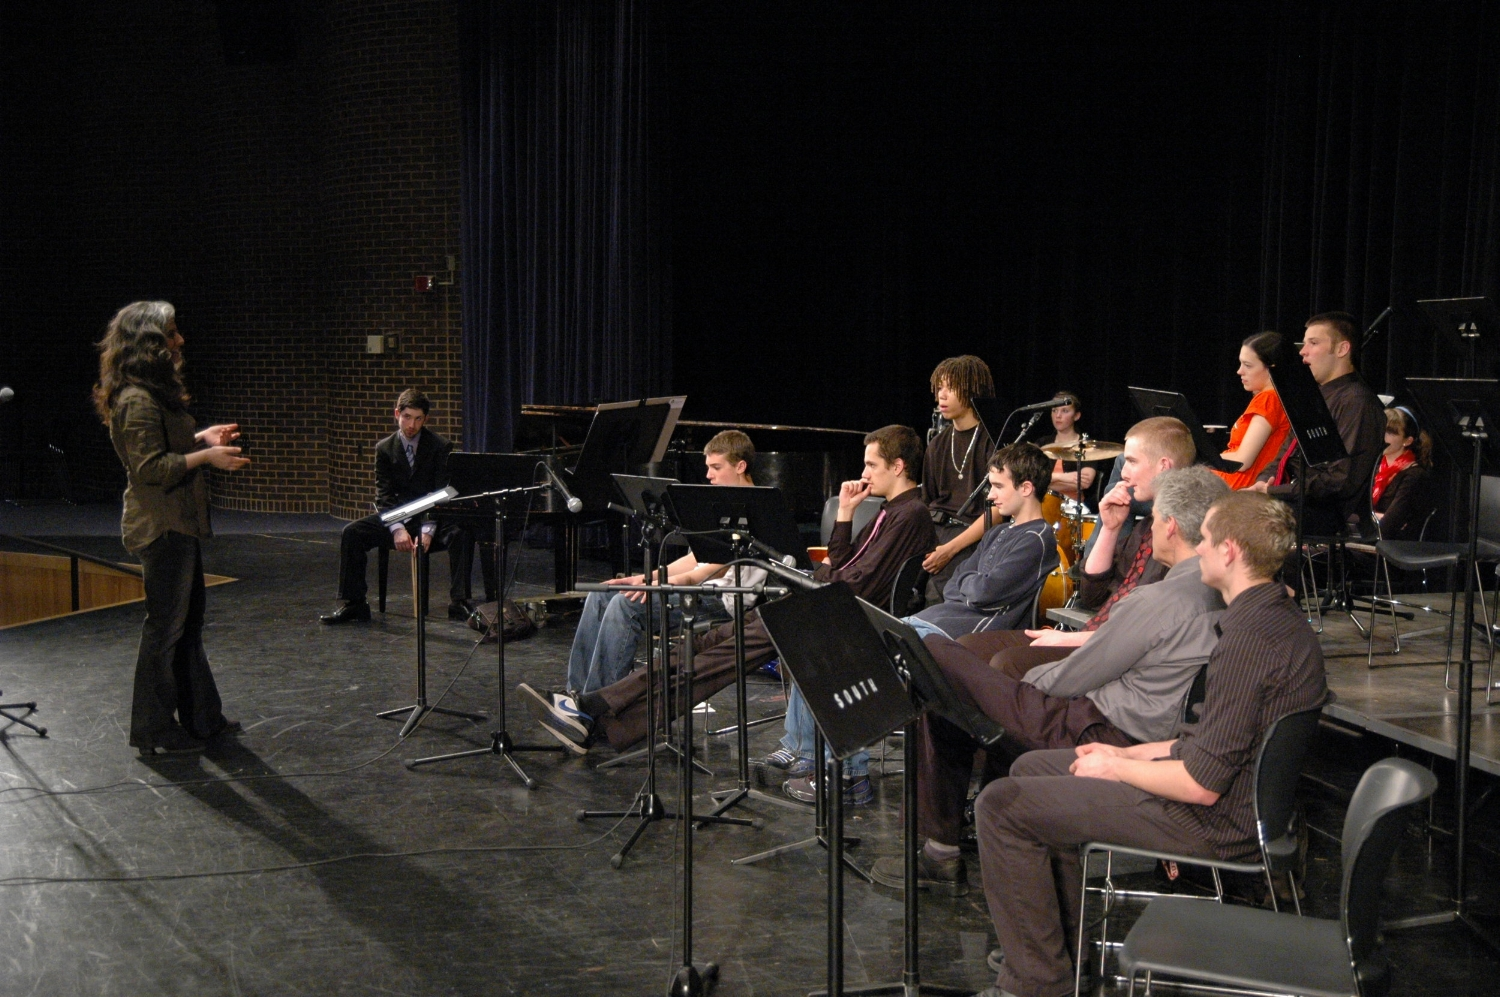 Pianist Mary Louise Knutson giving a masterclass to rhythm section players at the Winter Jazz Blast, a festival for middle and high school jazz bands in the Twin Cities and Upper Midwest, St. Paul, MN.